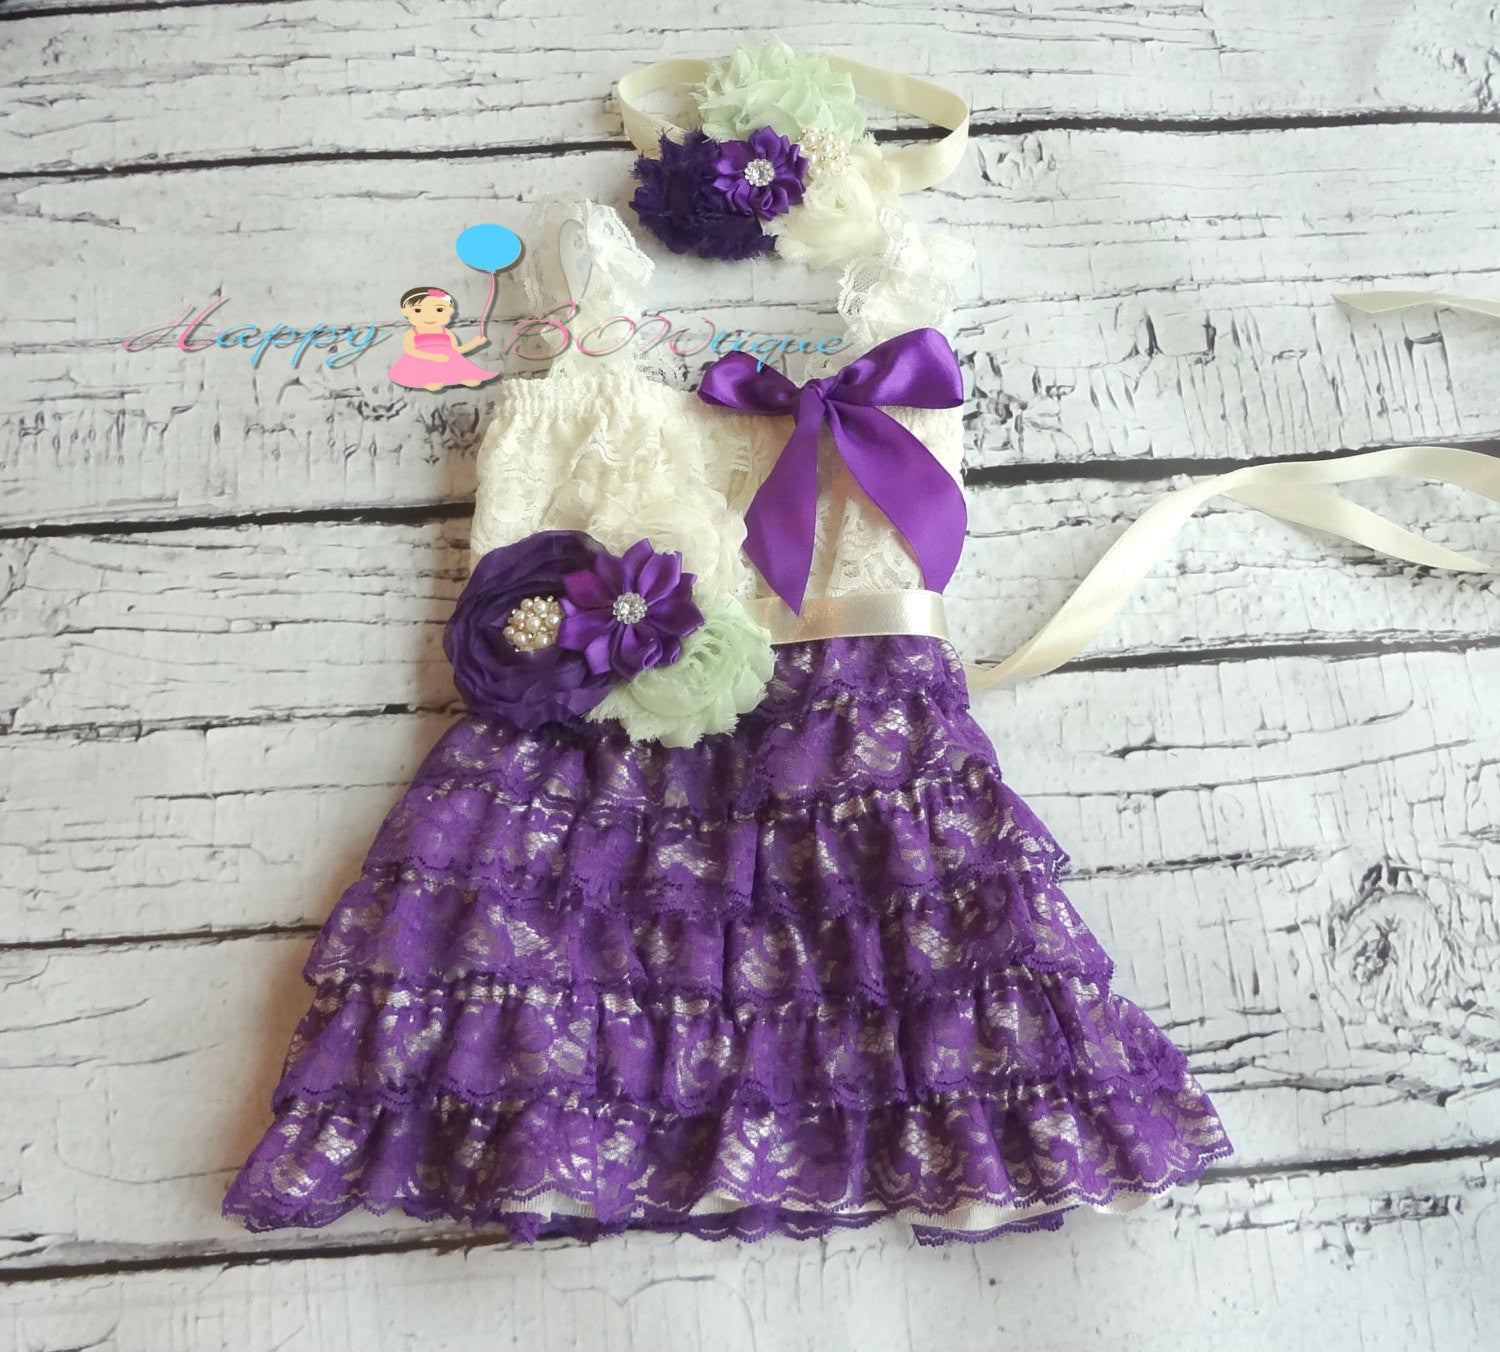 Girl's Ivory Mint Purple Dress Set/ Girl's Purple Dress - Happy BOWtique - children's clothing, Baby Girl clothing